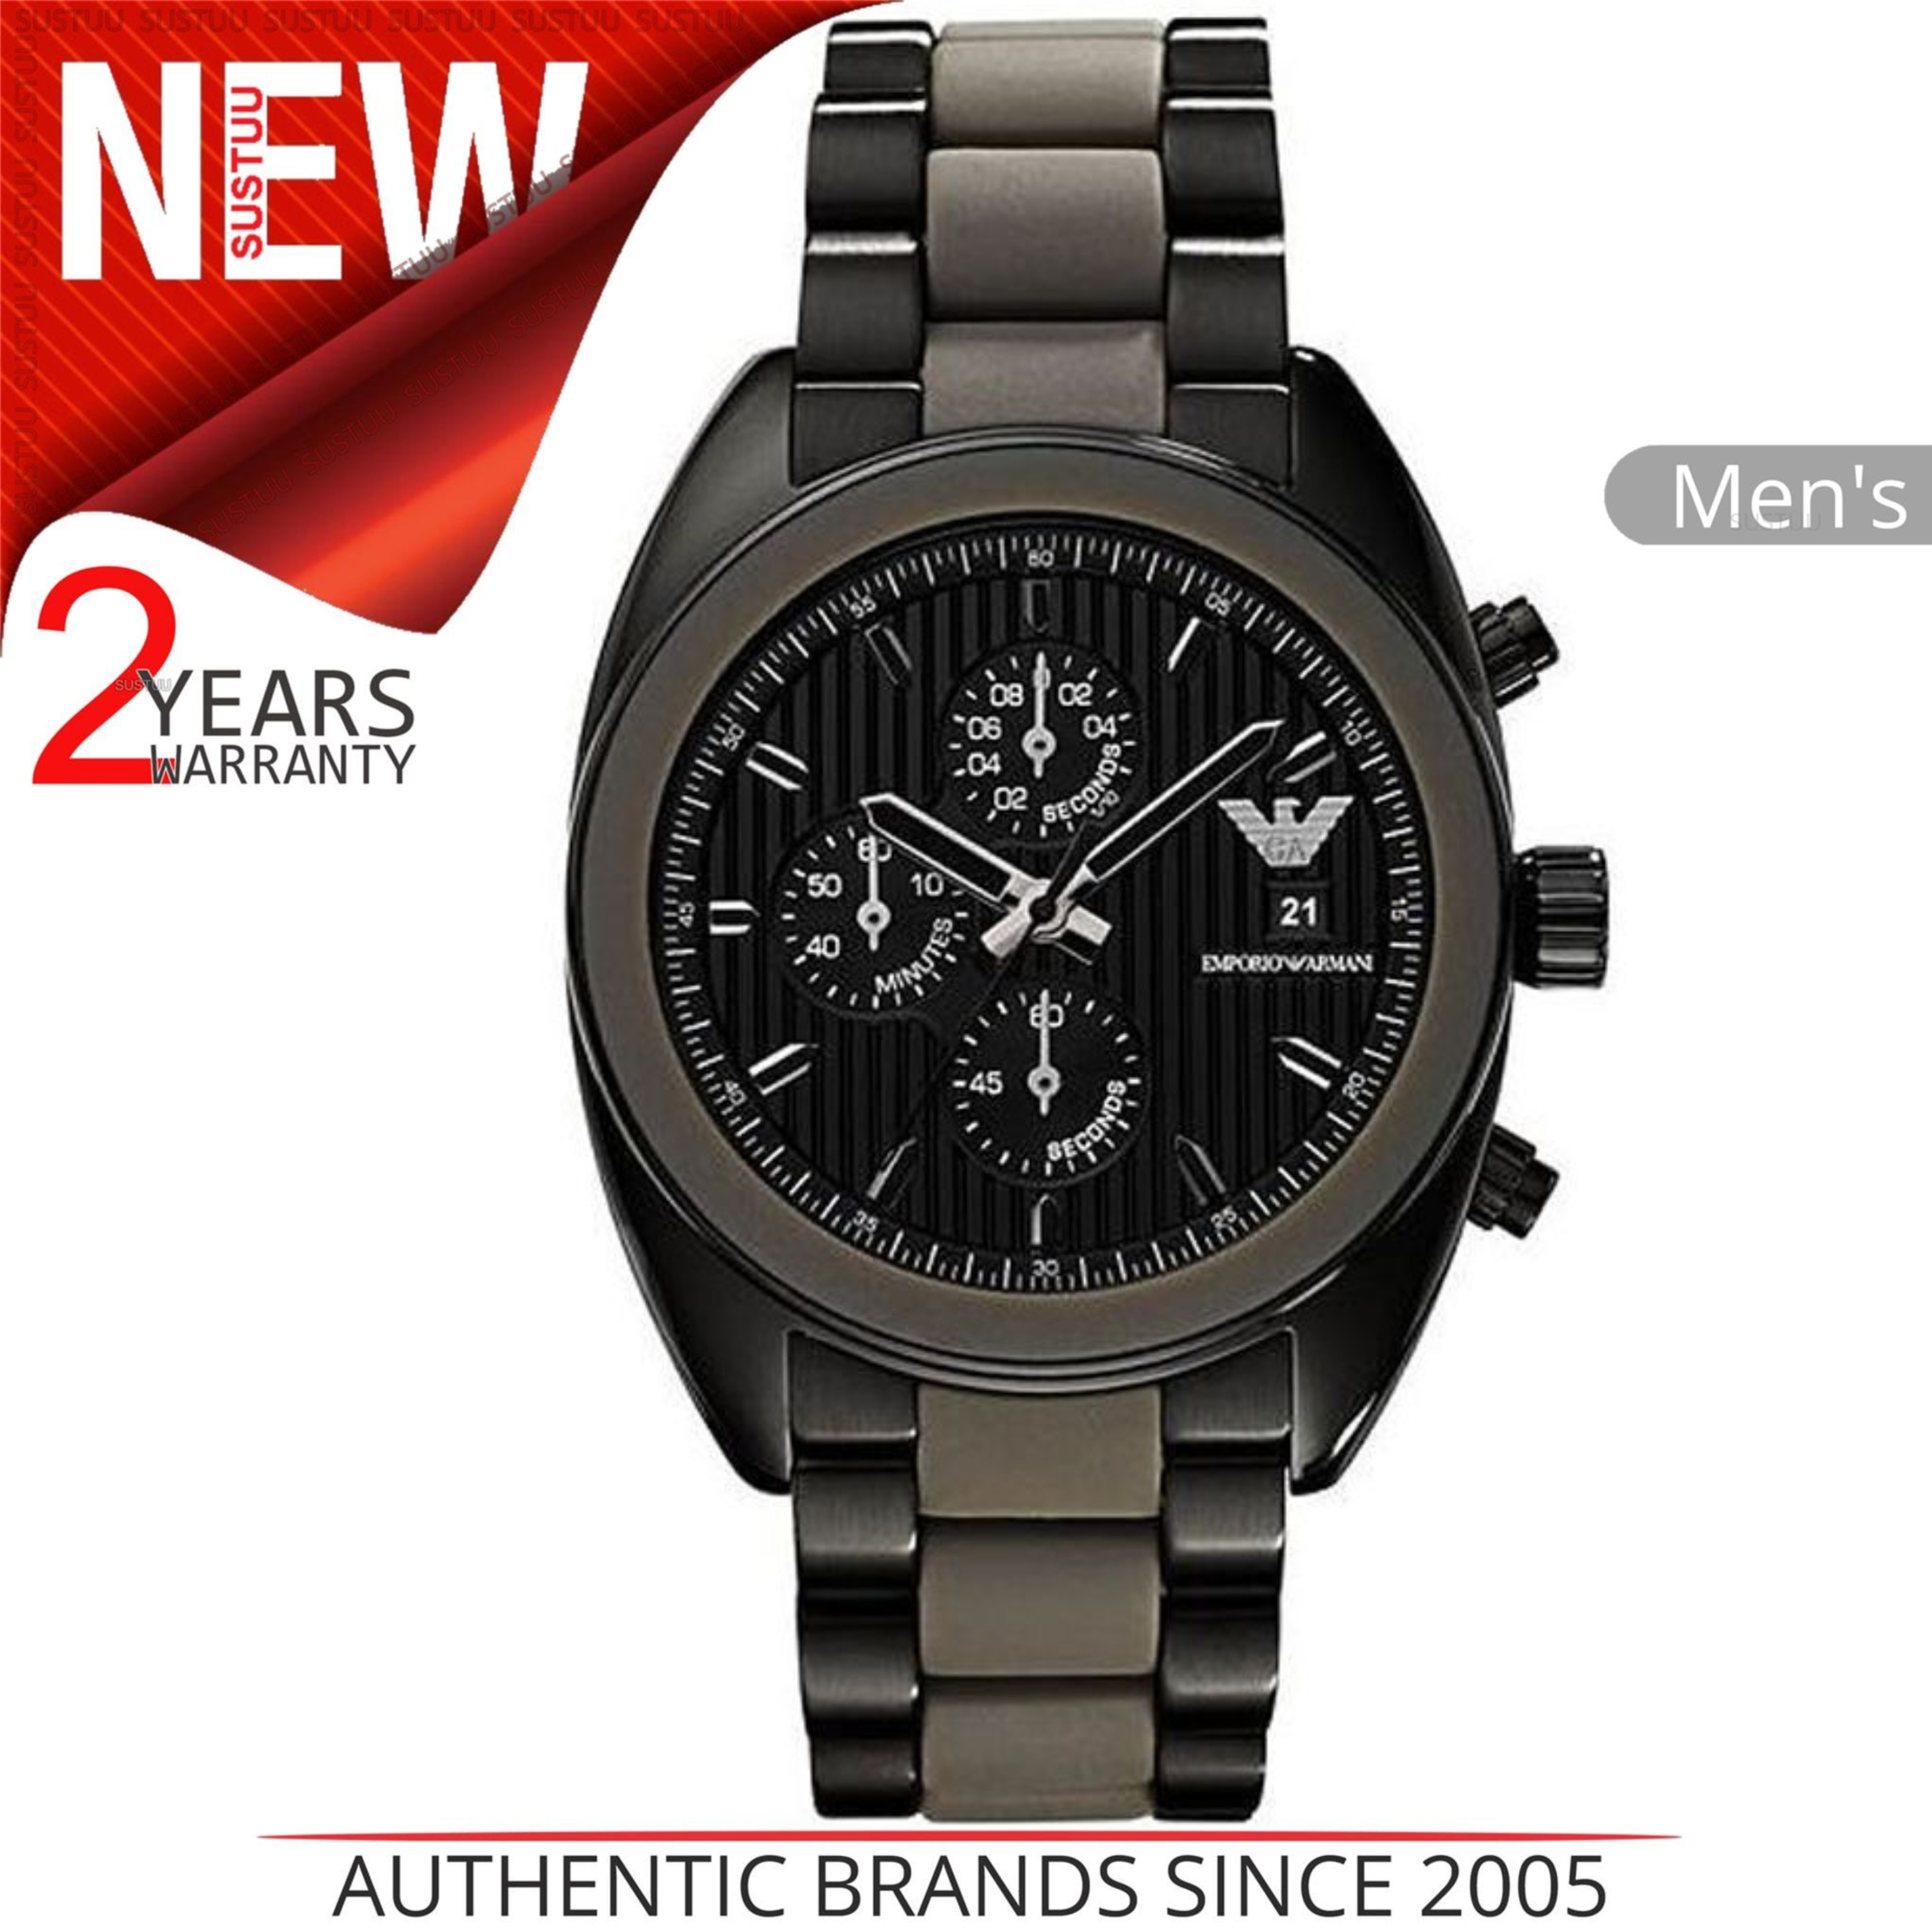 9138fbe7afb05 Details about Emporio Armani Sportivo Men s Watch│Black Chronograph  Dial│Stainless Band│AR5953